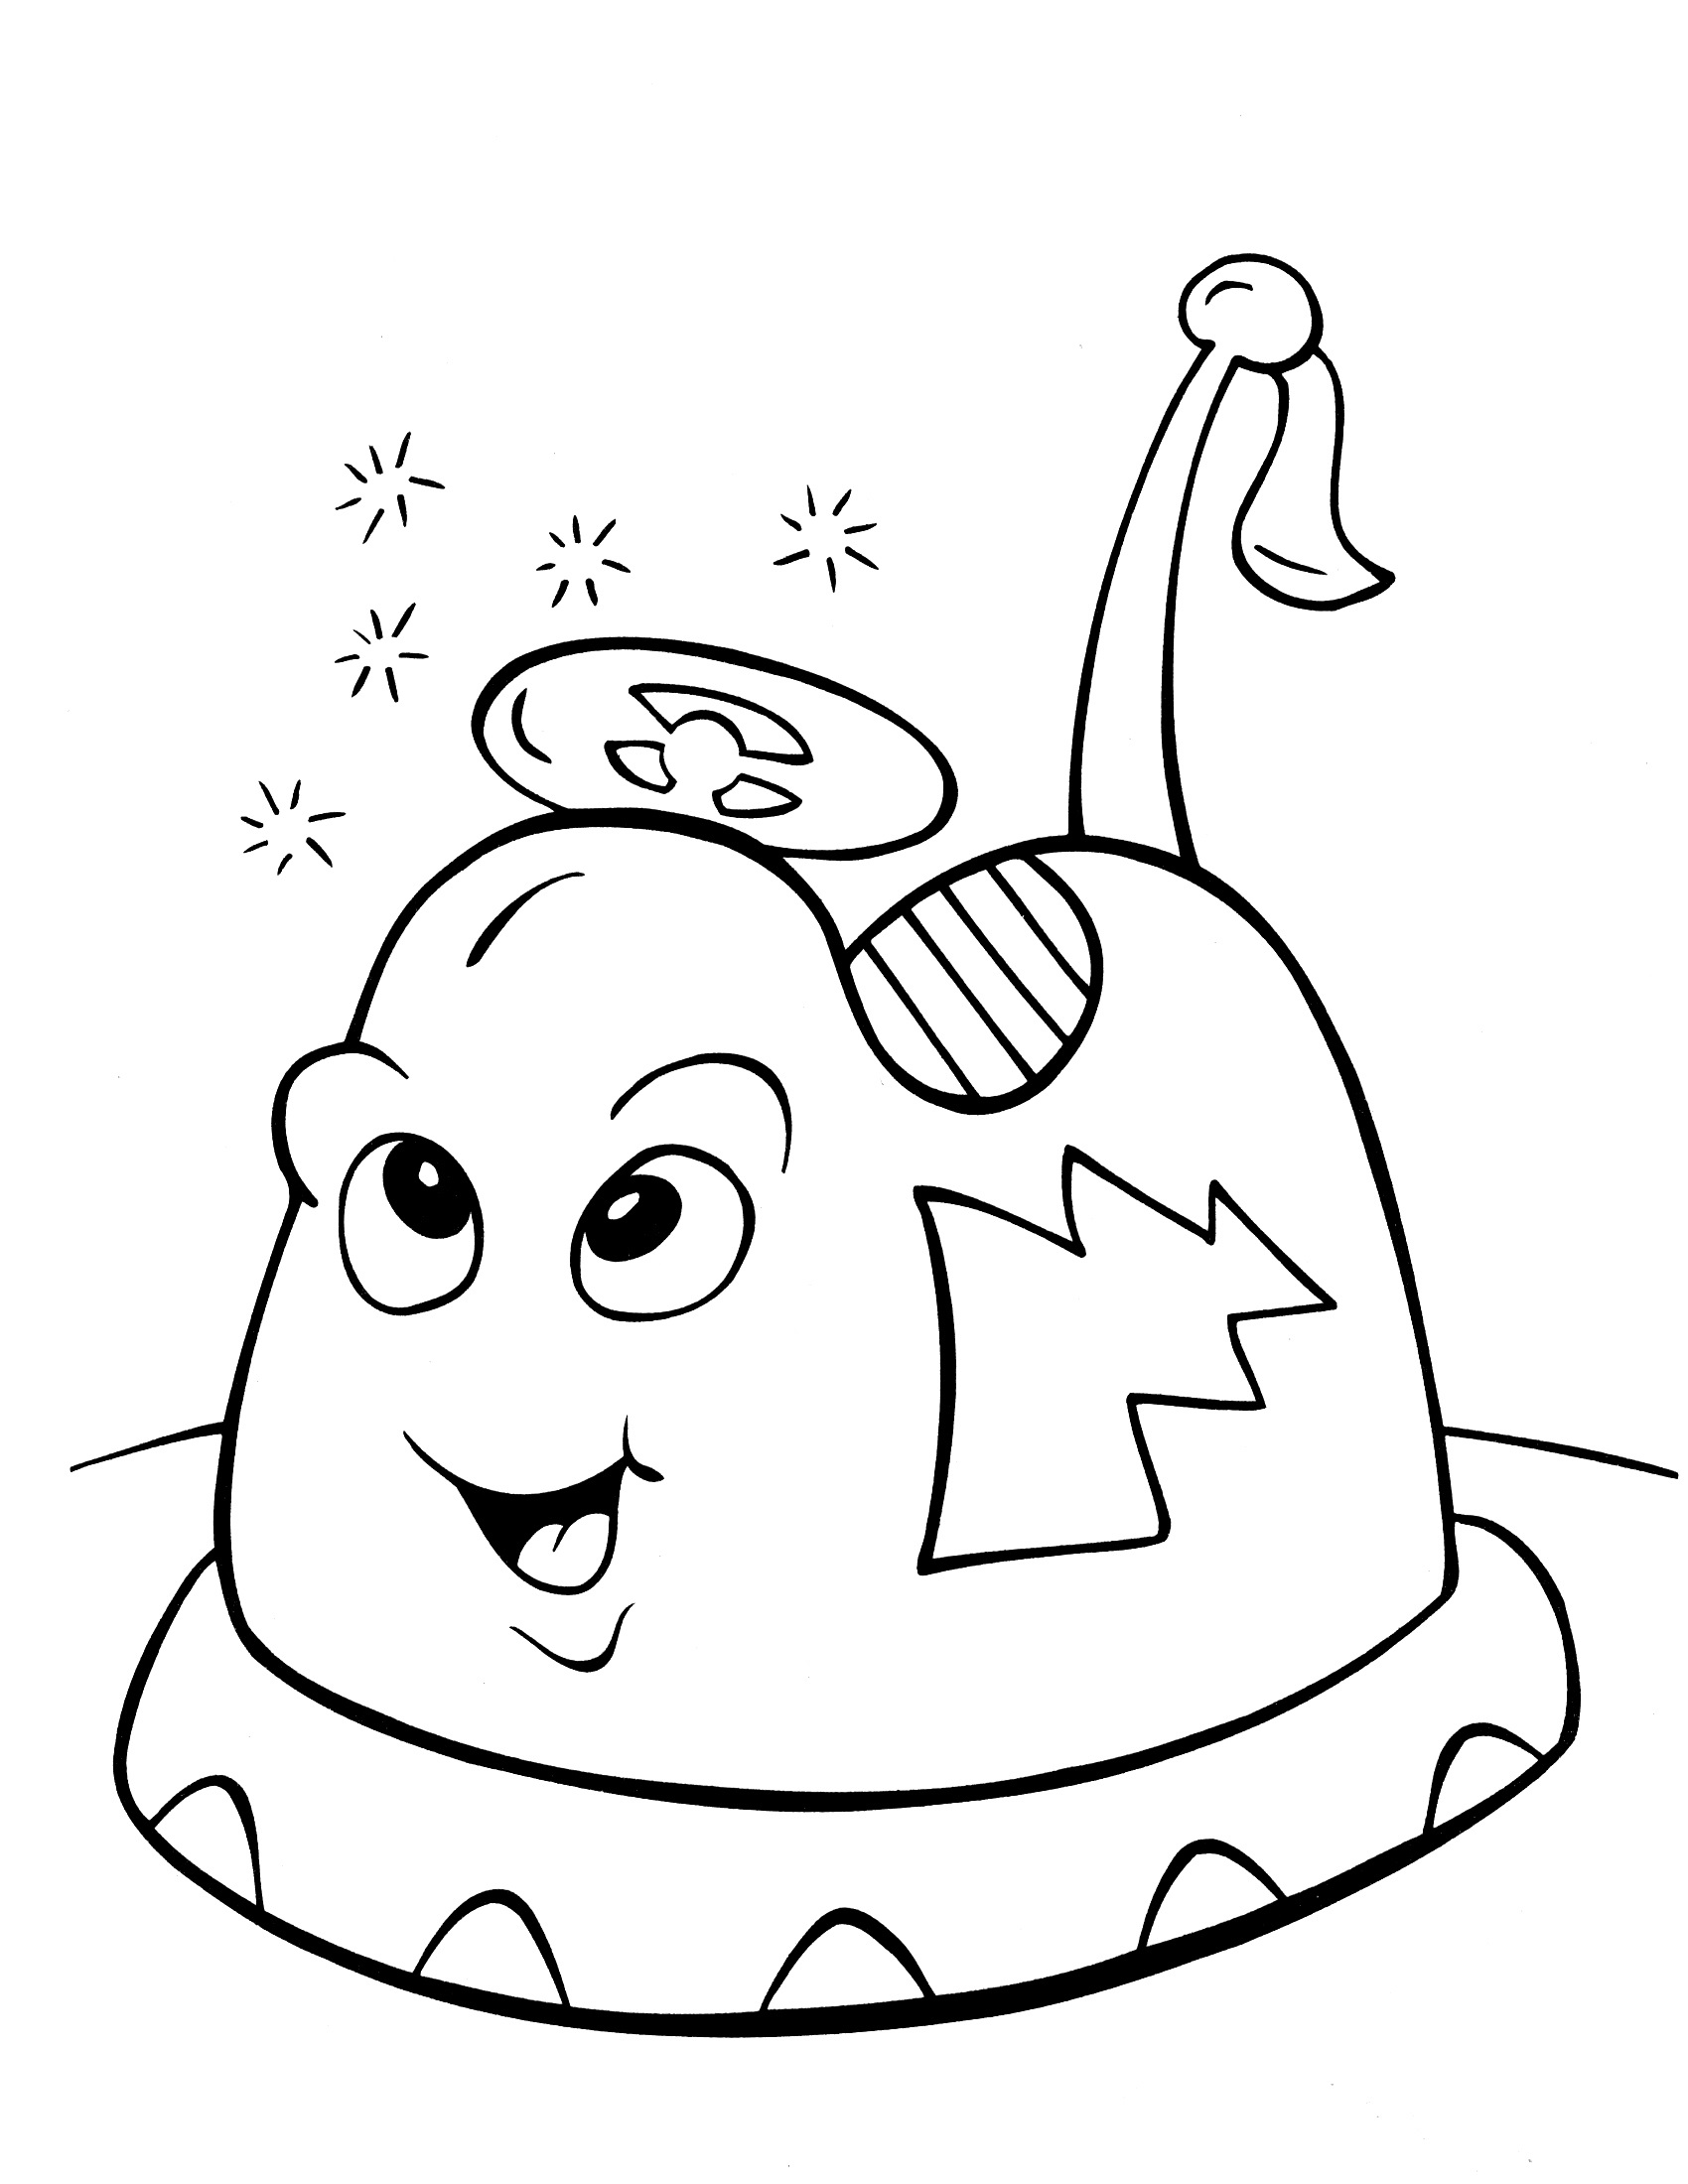 crayola coloring pages 4